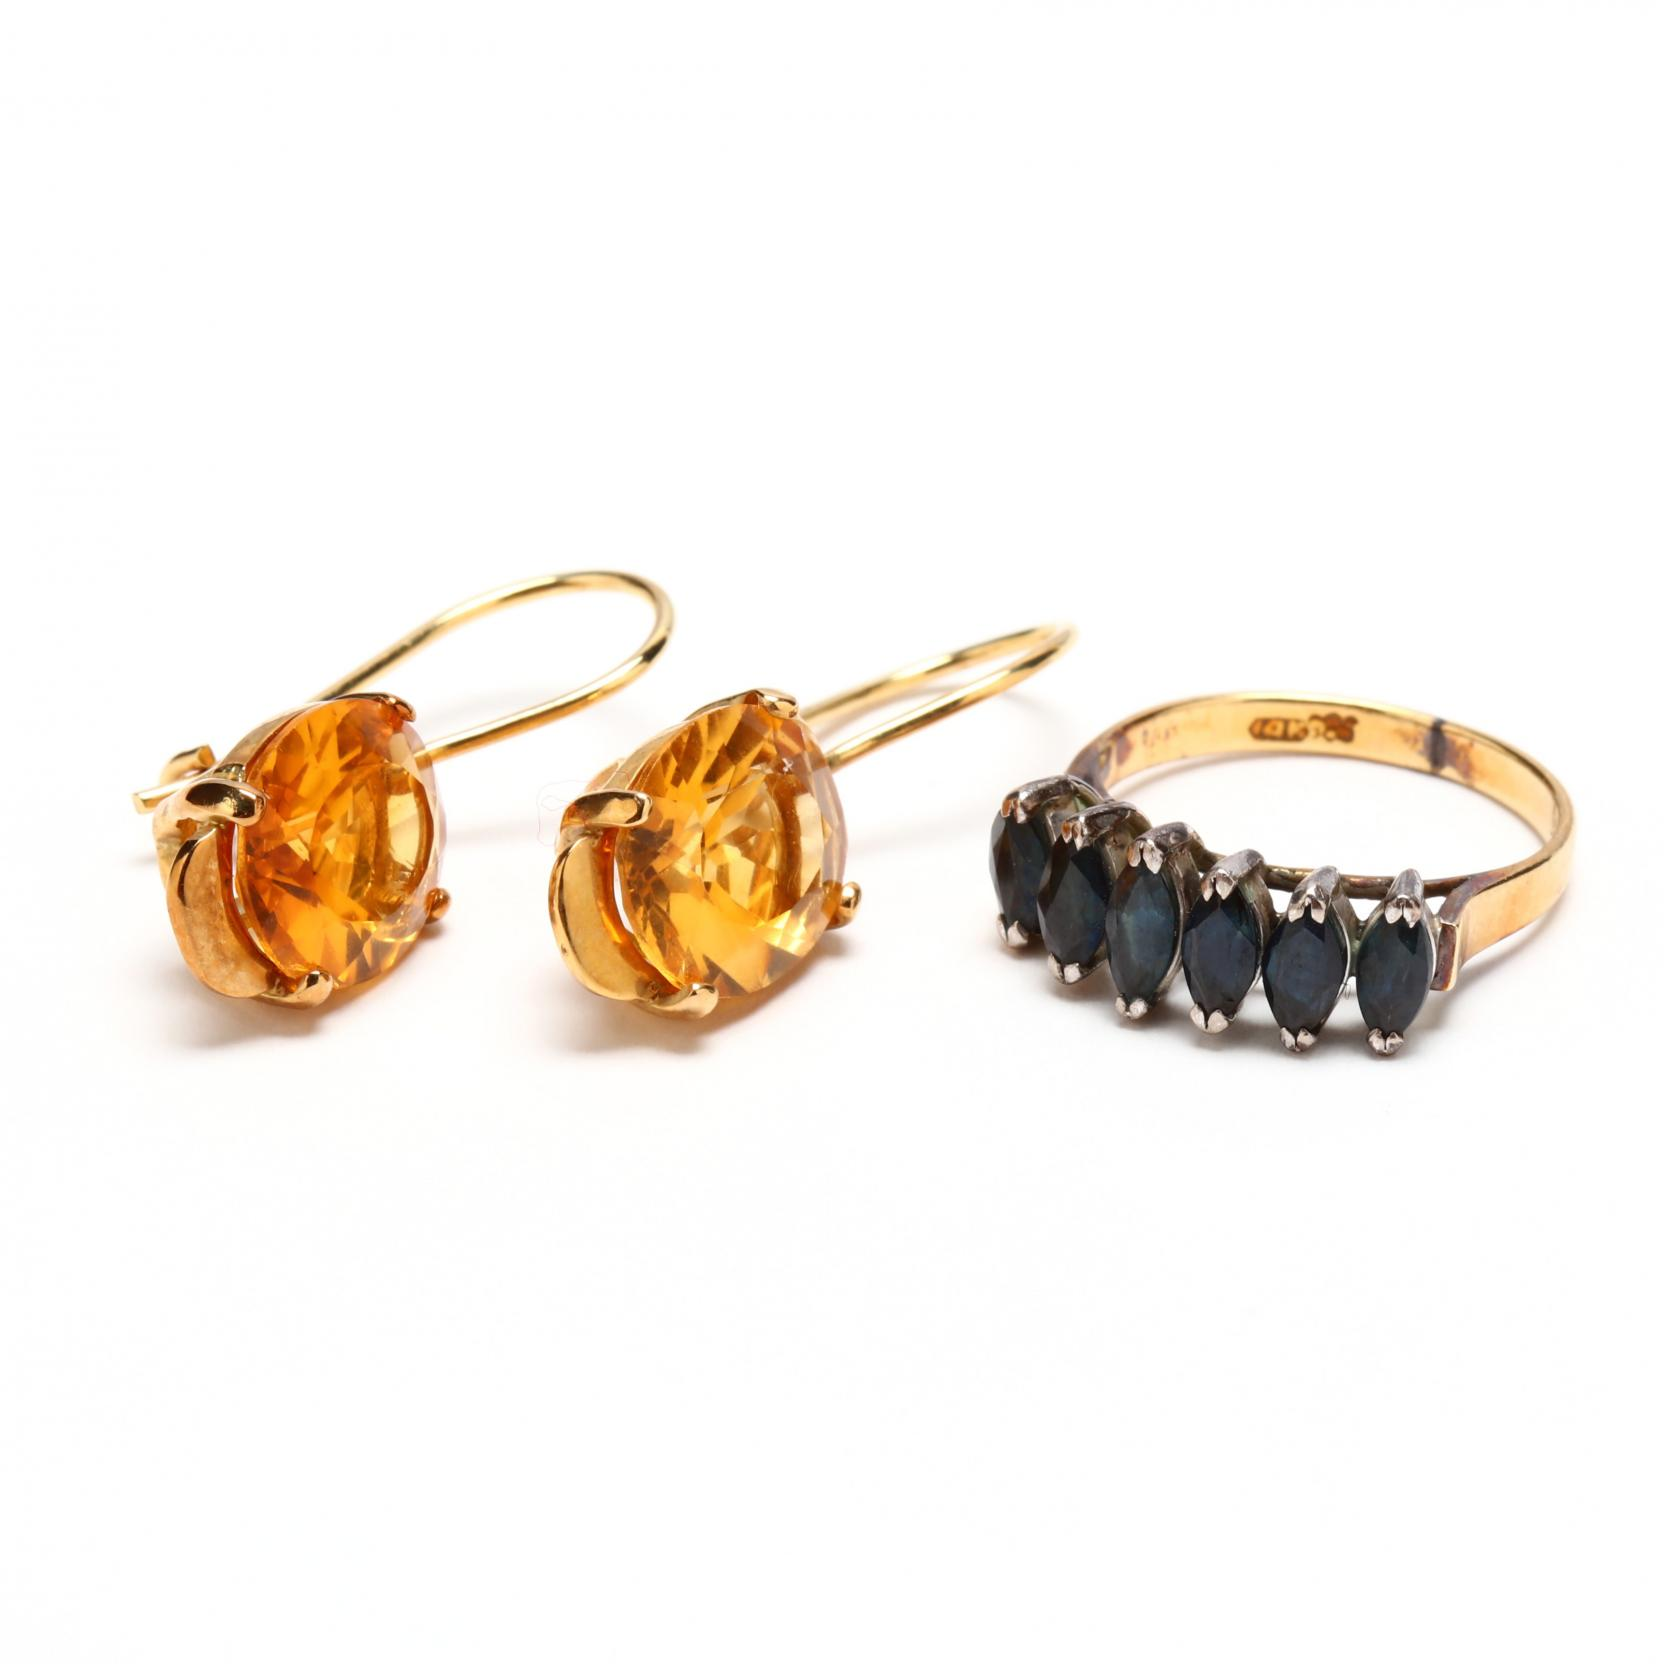 14kt-gold-and-gem-set-ring-and-earrings